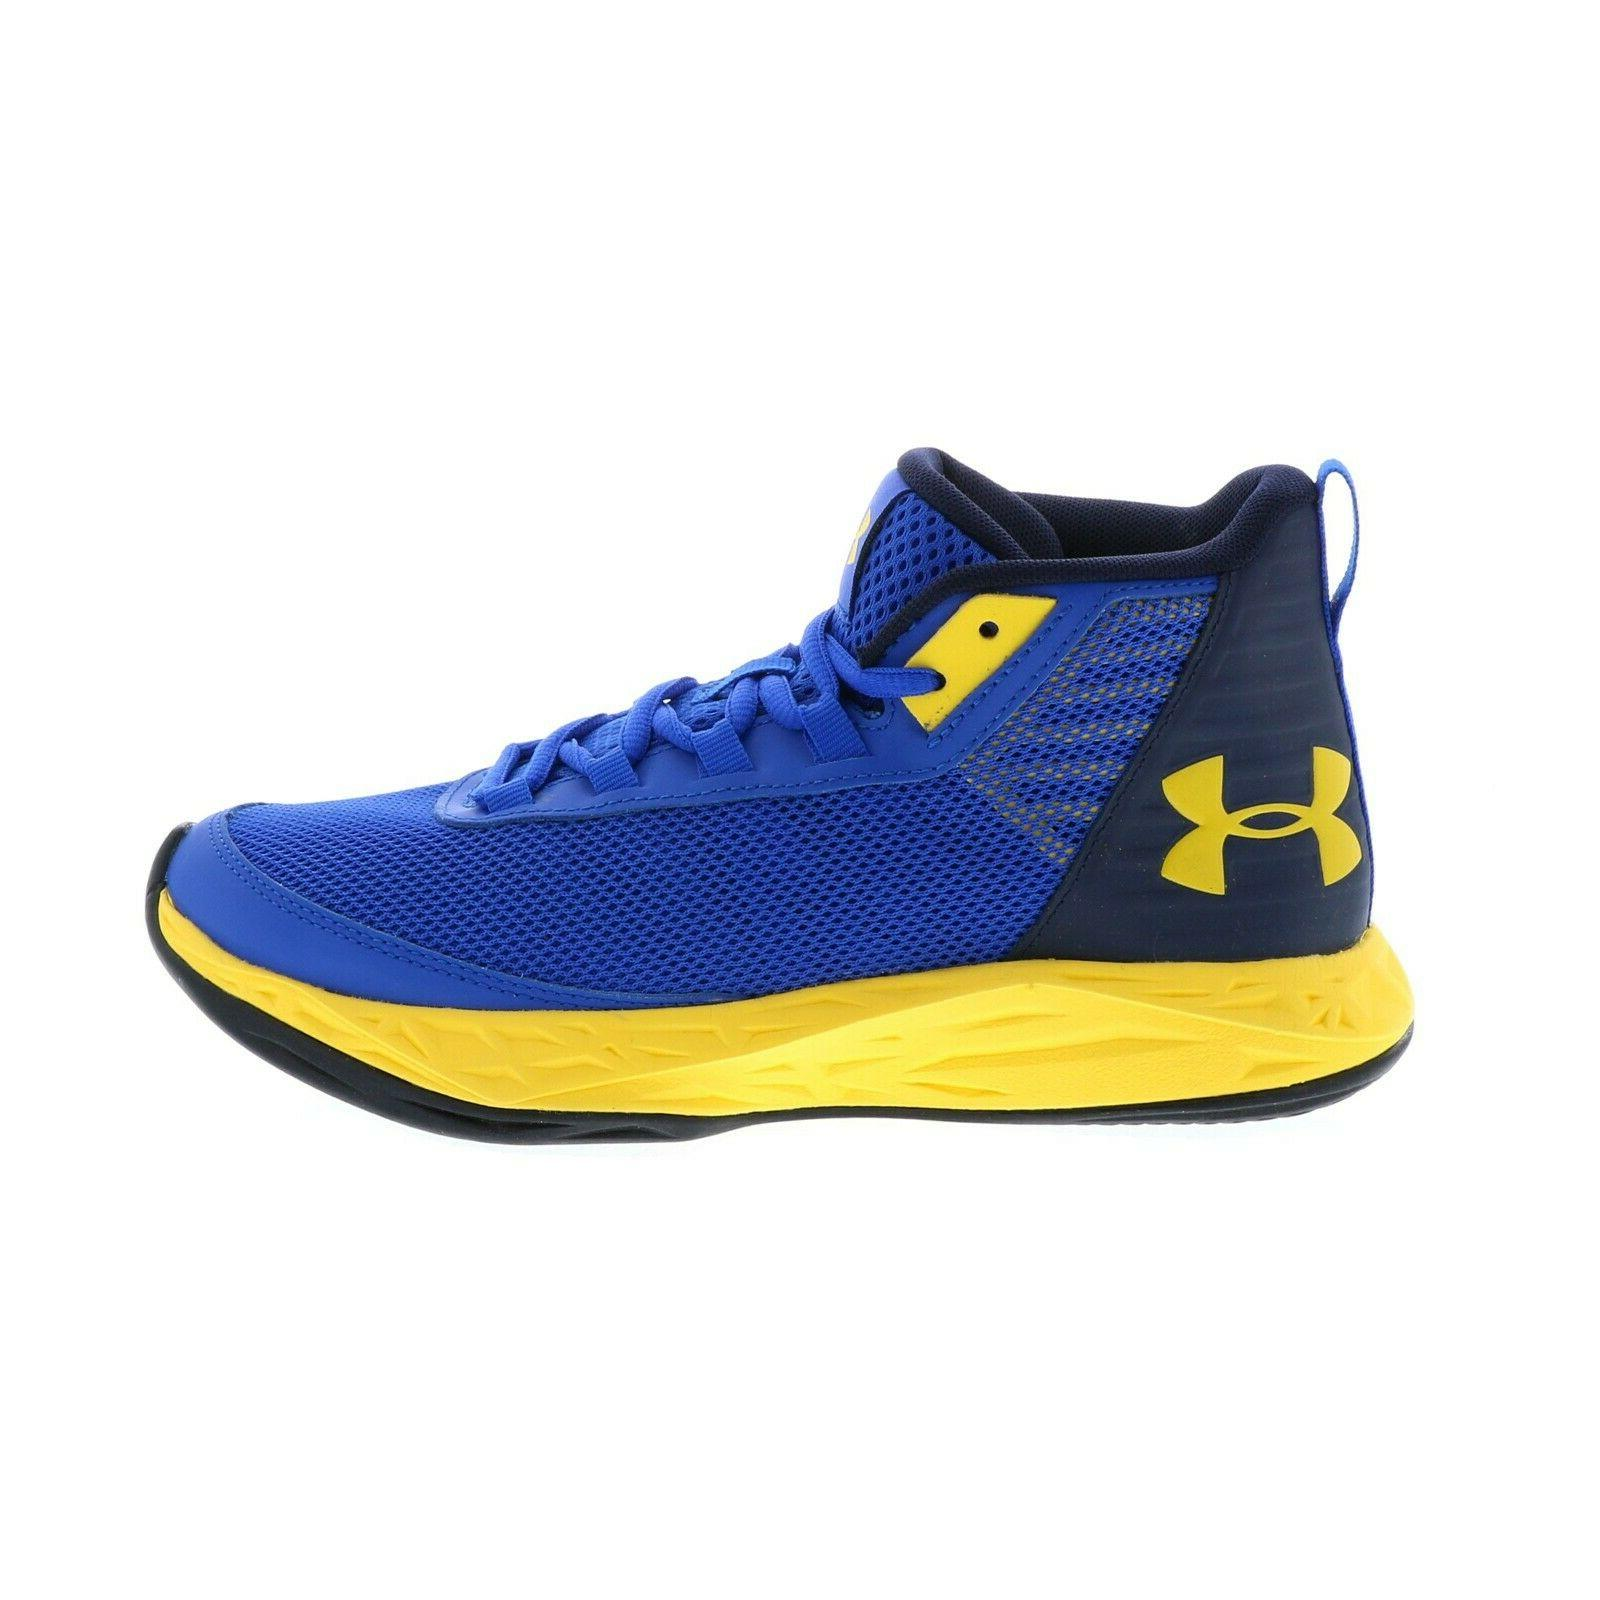 bgs jet 2018 basketball shoes youth sizes